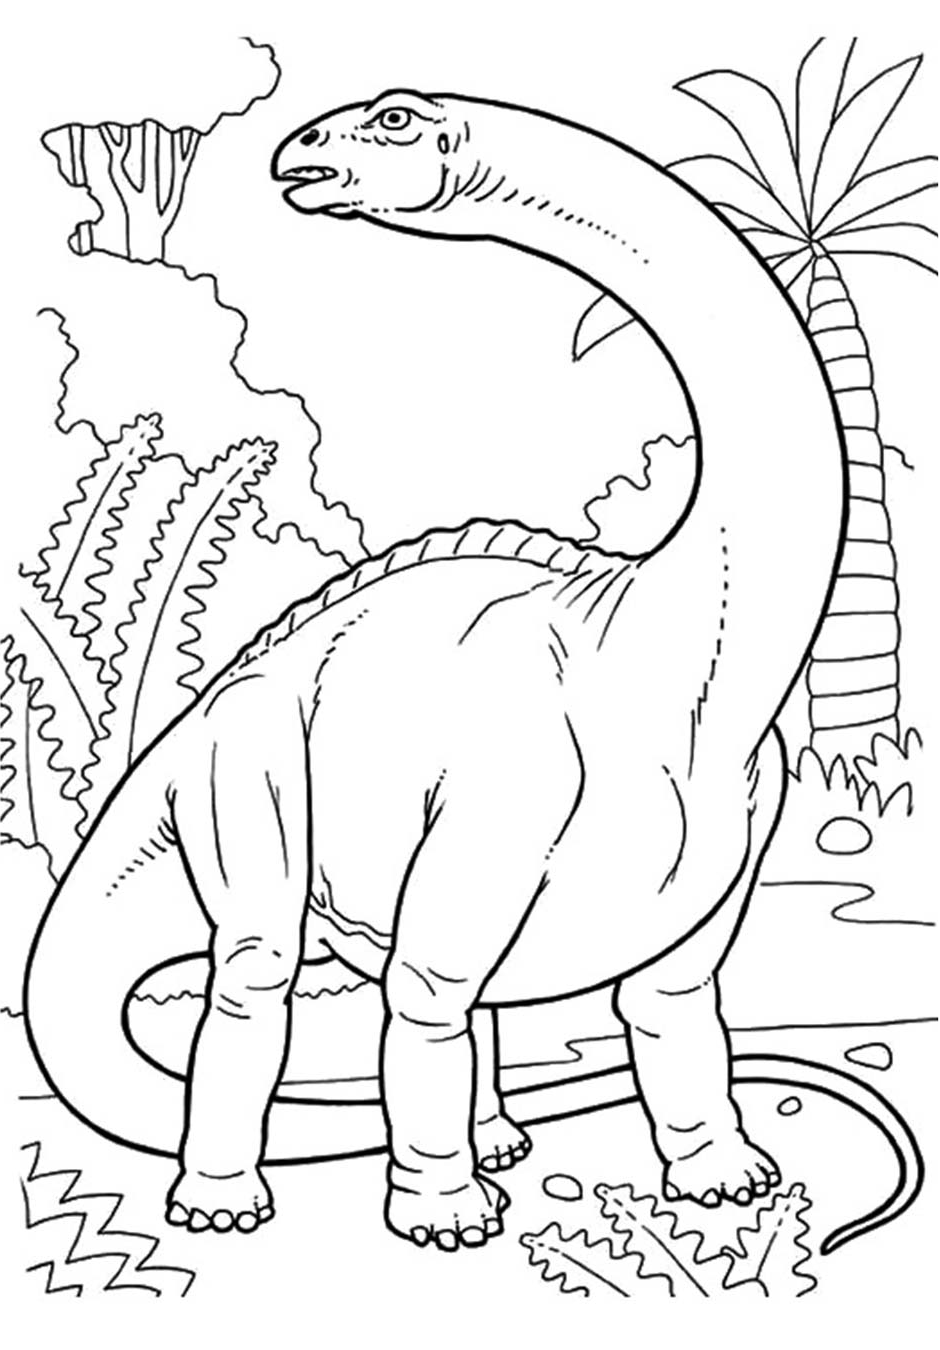 free printable coloring pages of dinosaurs free printable dinosaur coloring pages print color craft free pages coloring of printable dinosaurs